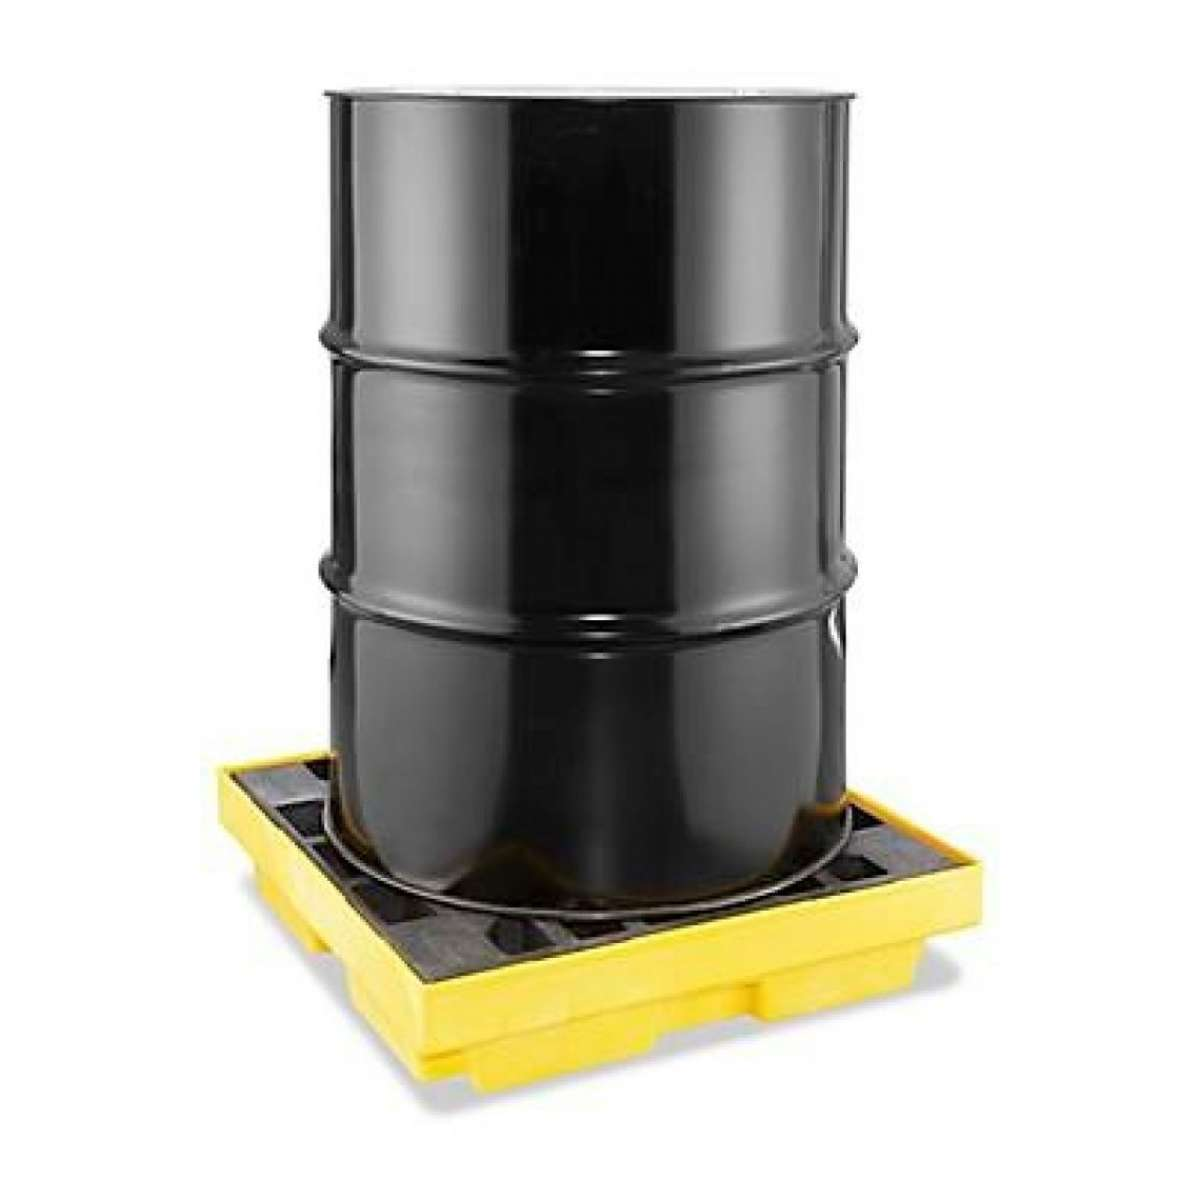 Spill Containment Workstation - 1 Drum